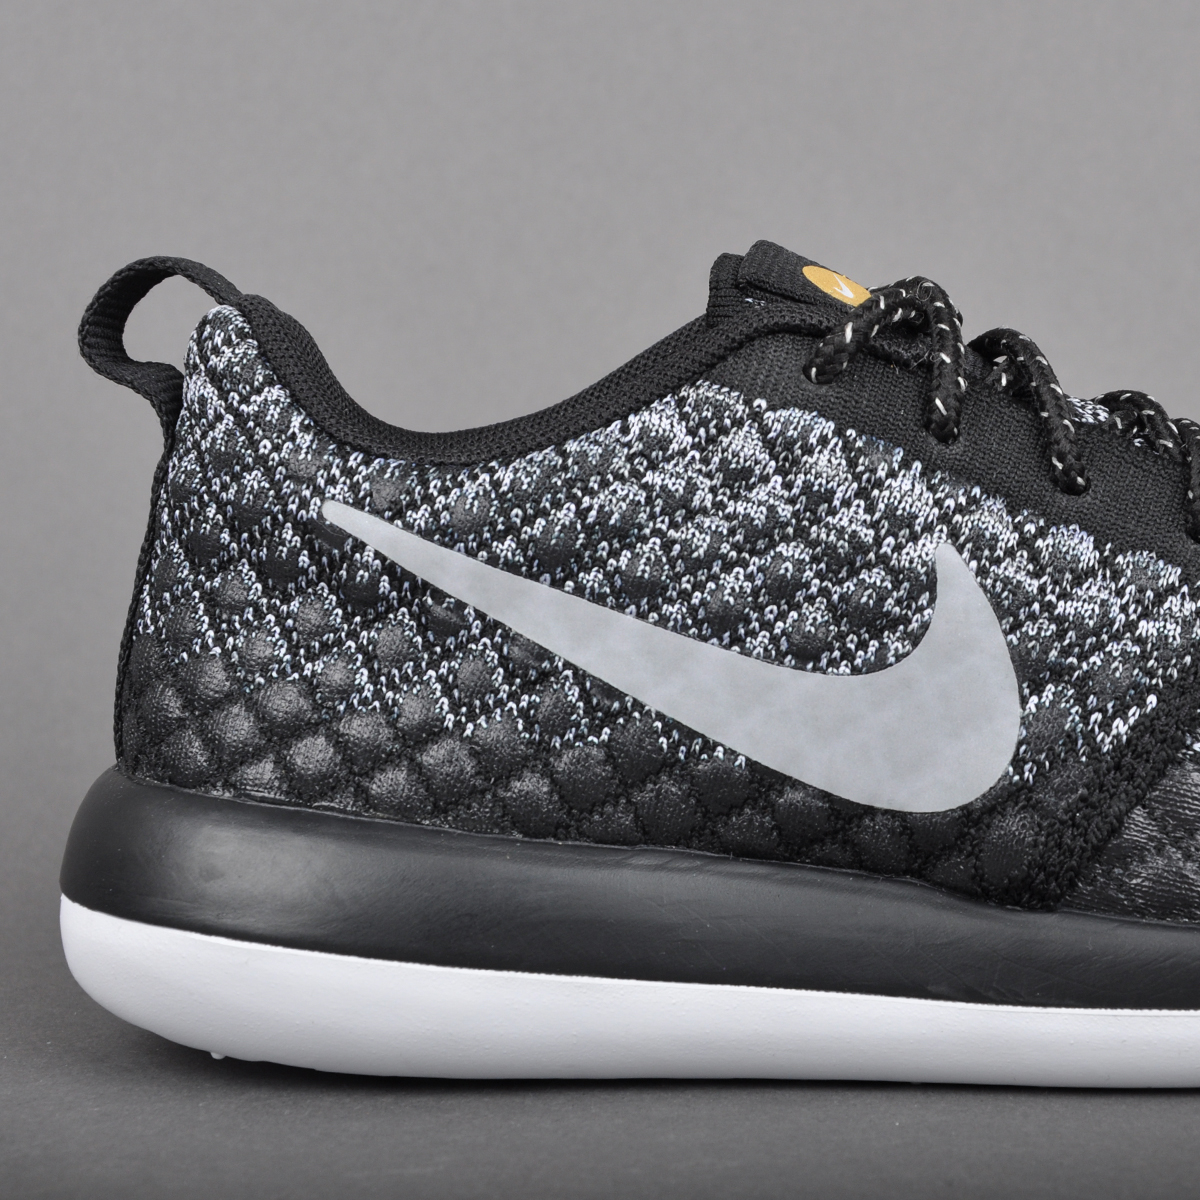 Bertucci's Cool Customized Roshe Nike Id Roshe Two ID, Cheap